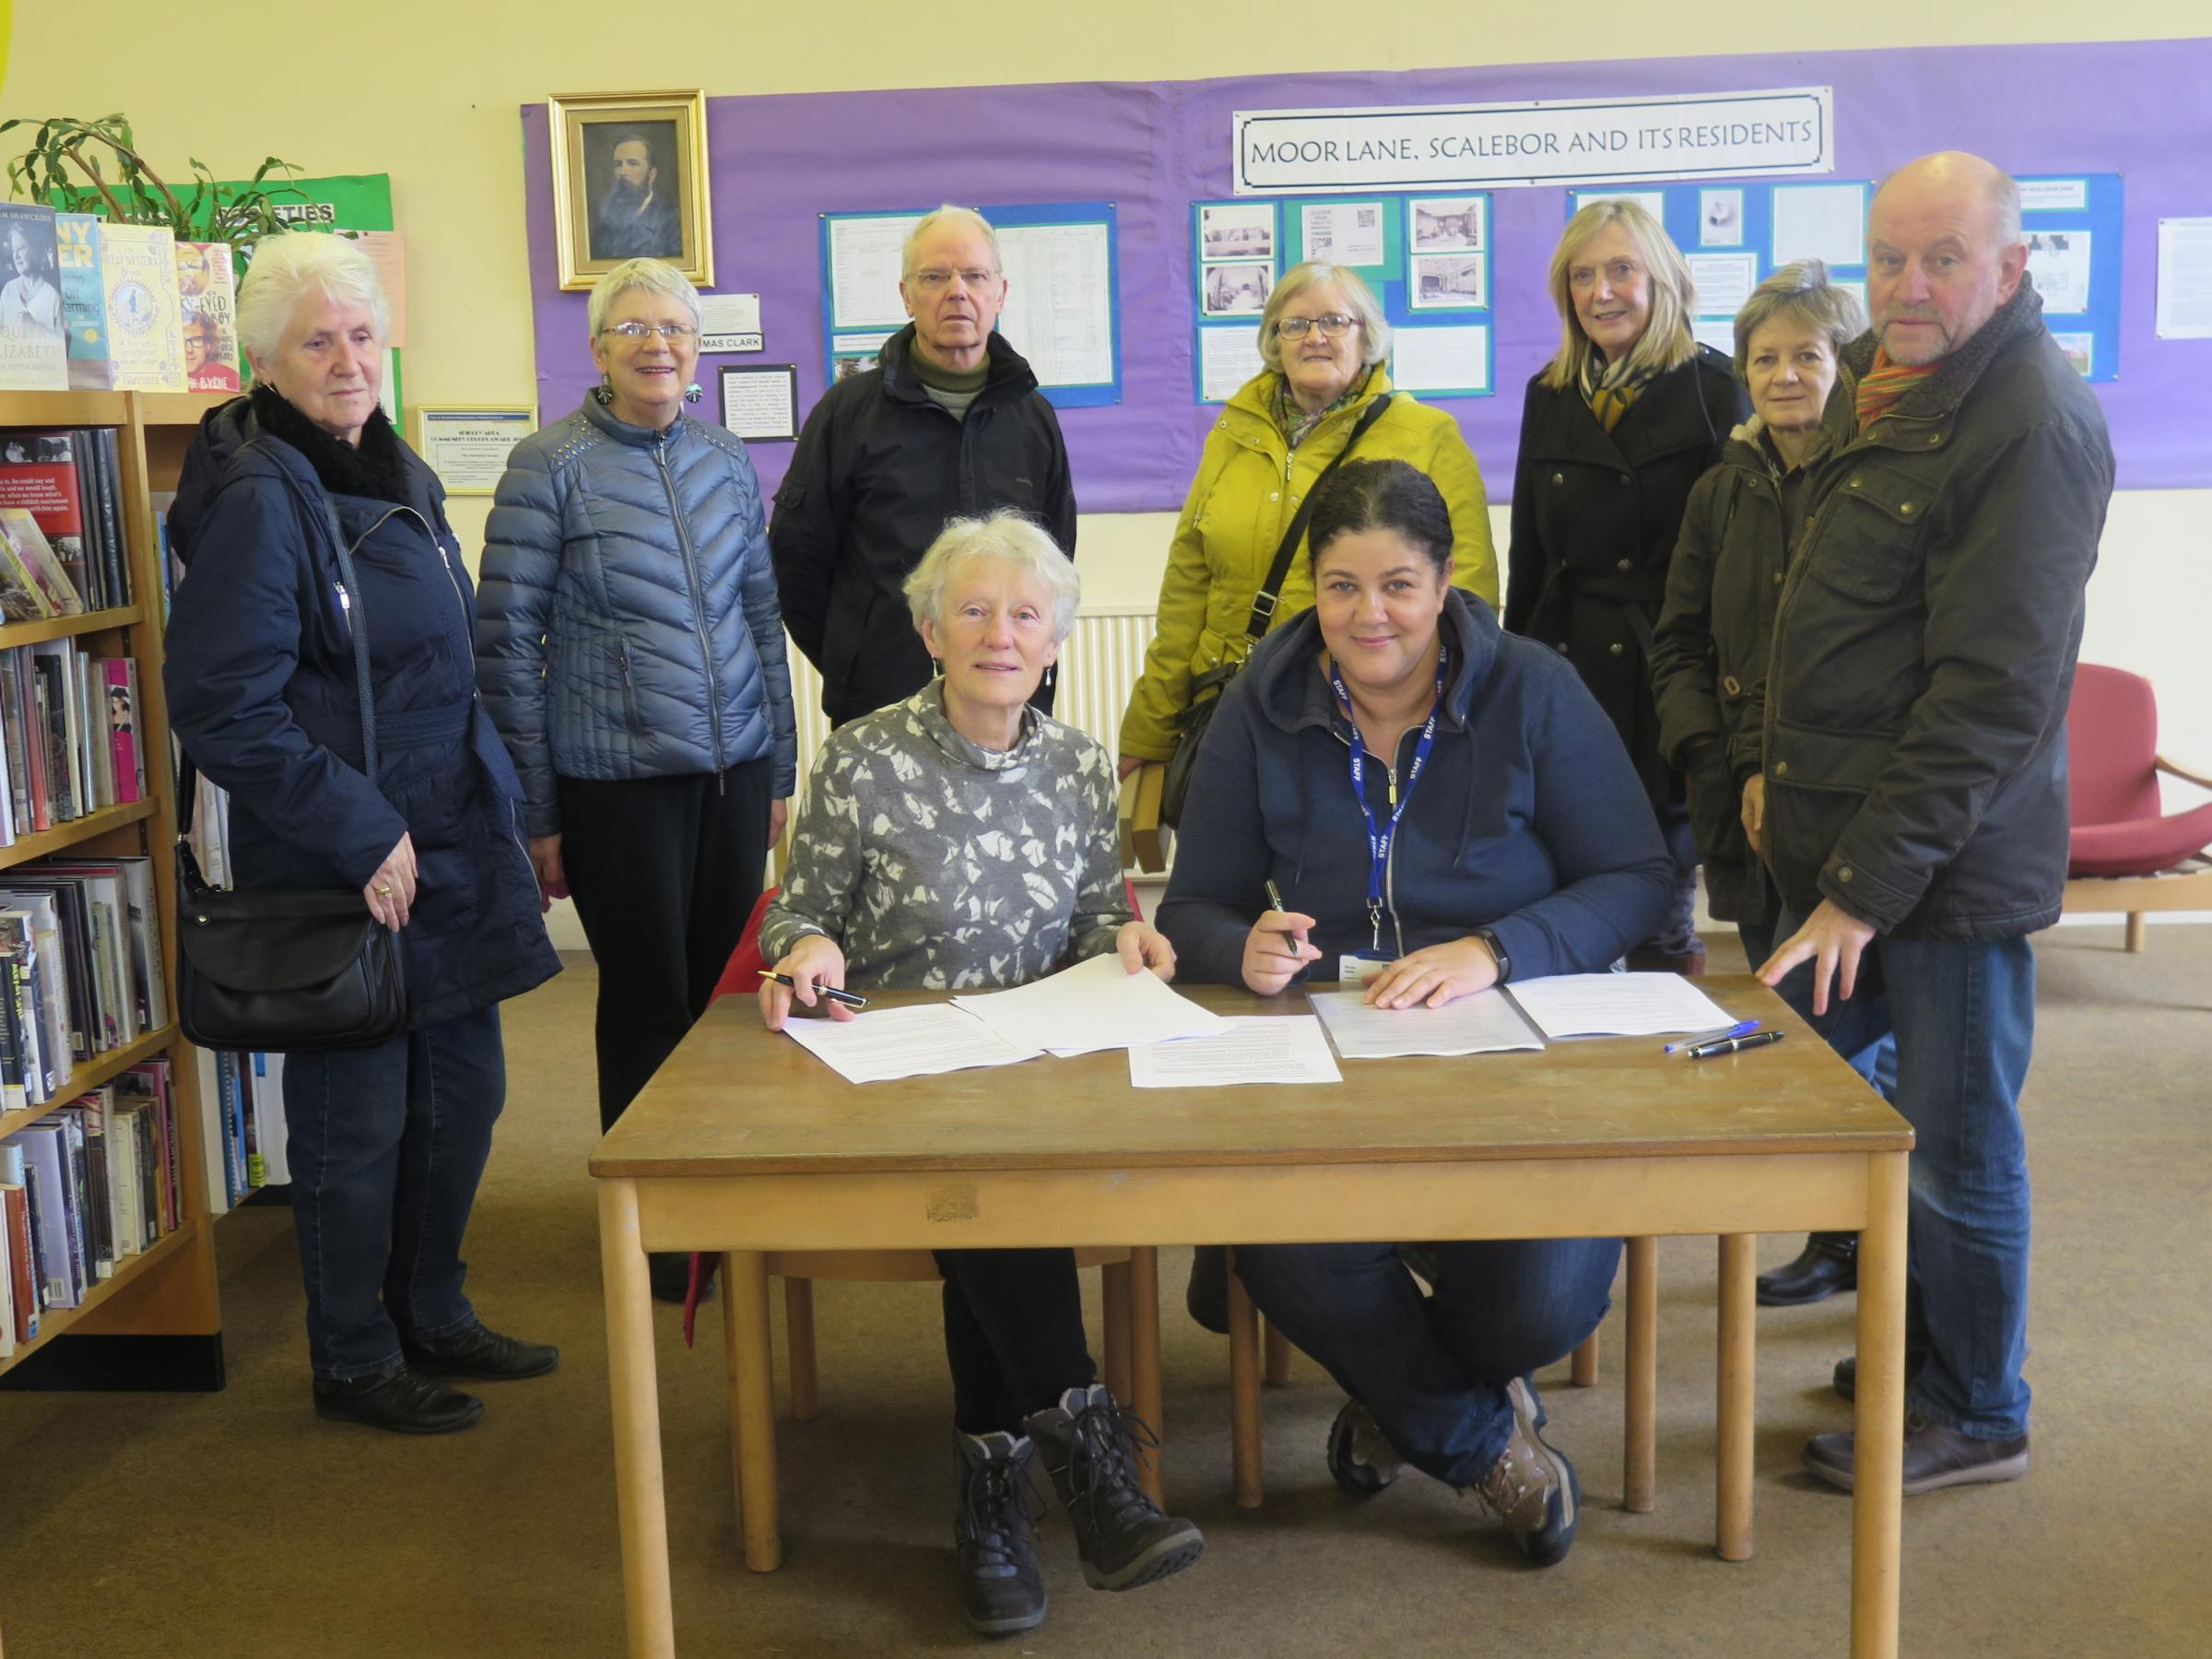 Parish Councillor Janet Souyave and Mandy Webb, Bradford Branch Libraries Manger, supported by some of the Burley Library volunteers sign the Service Level Agreement ensuring Burley Library will remain open after April 1, 2017